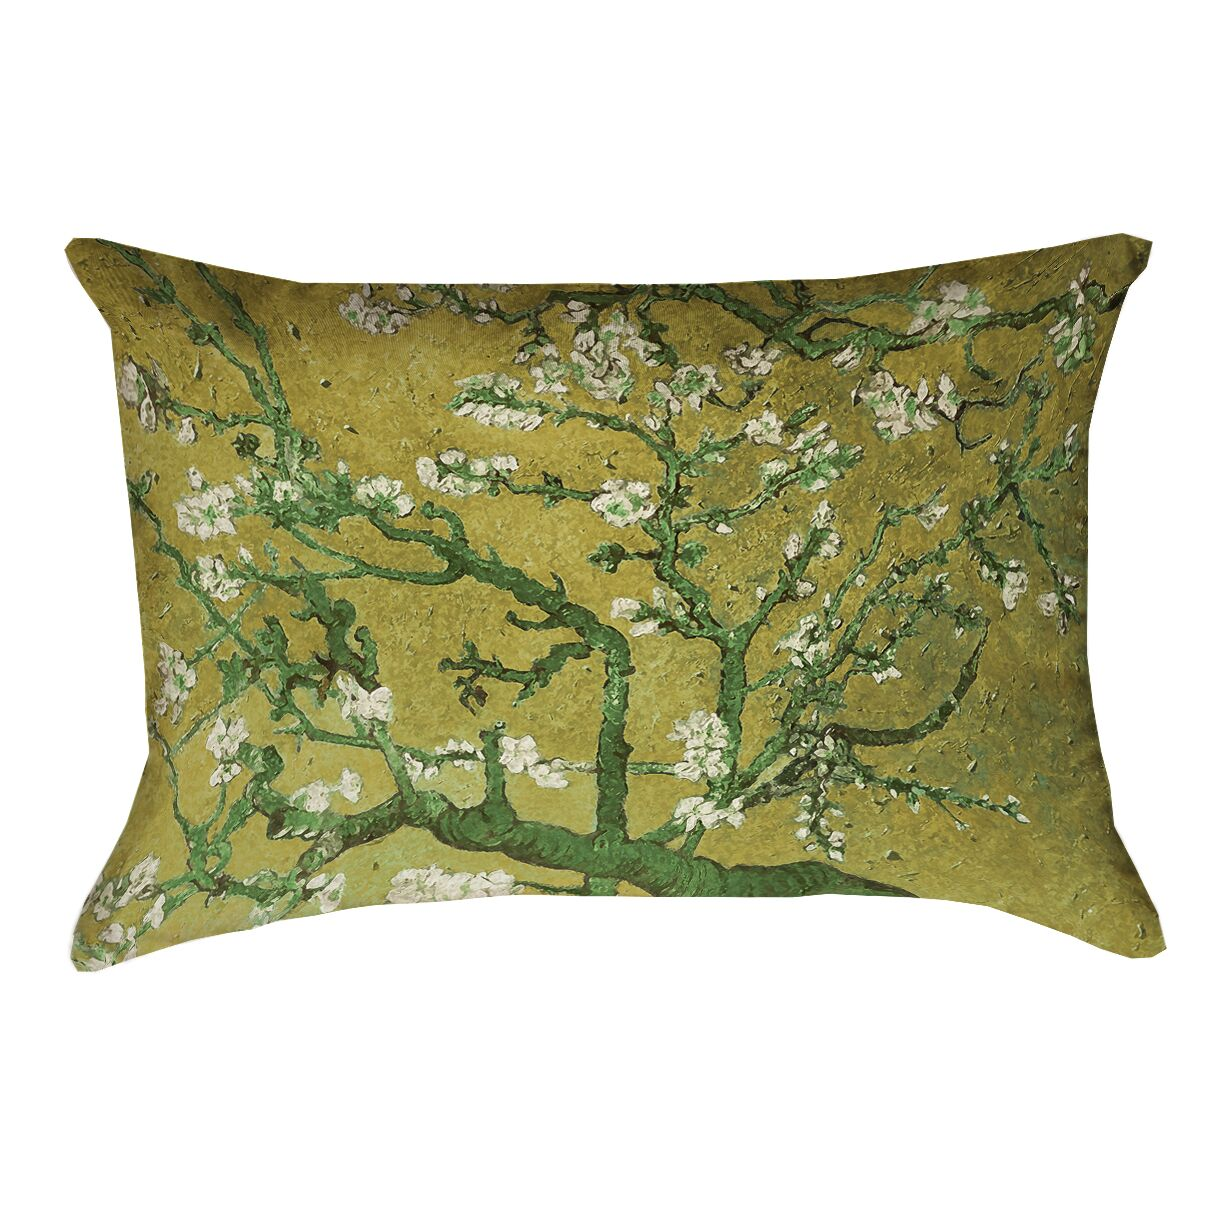 Lei Almond Blossom Lumbar Pillow with Concealed Zipper Color: Yellow/Green